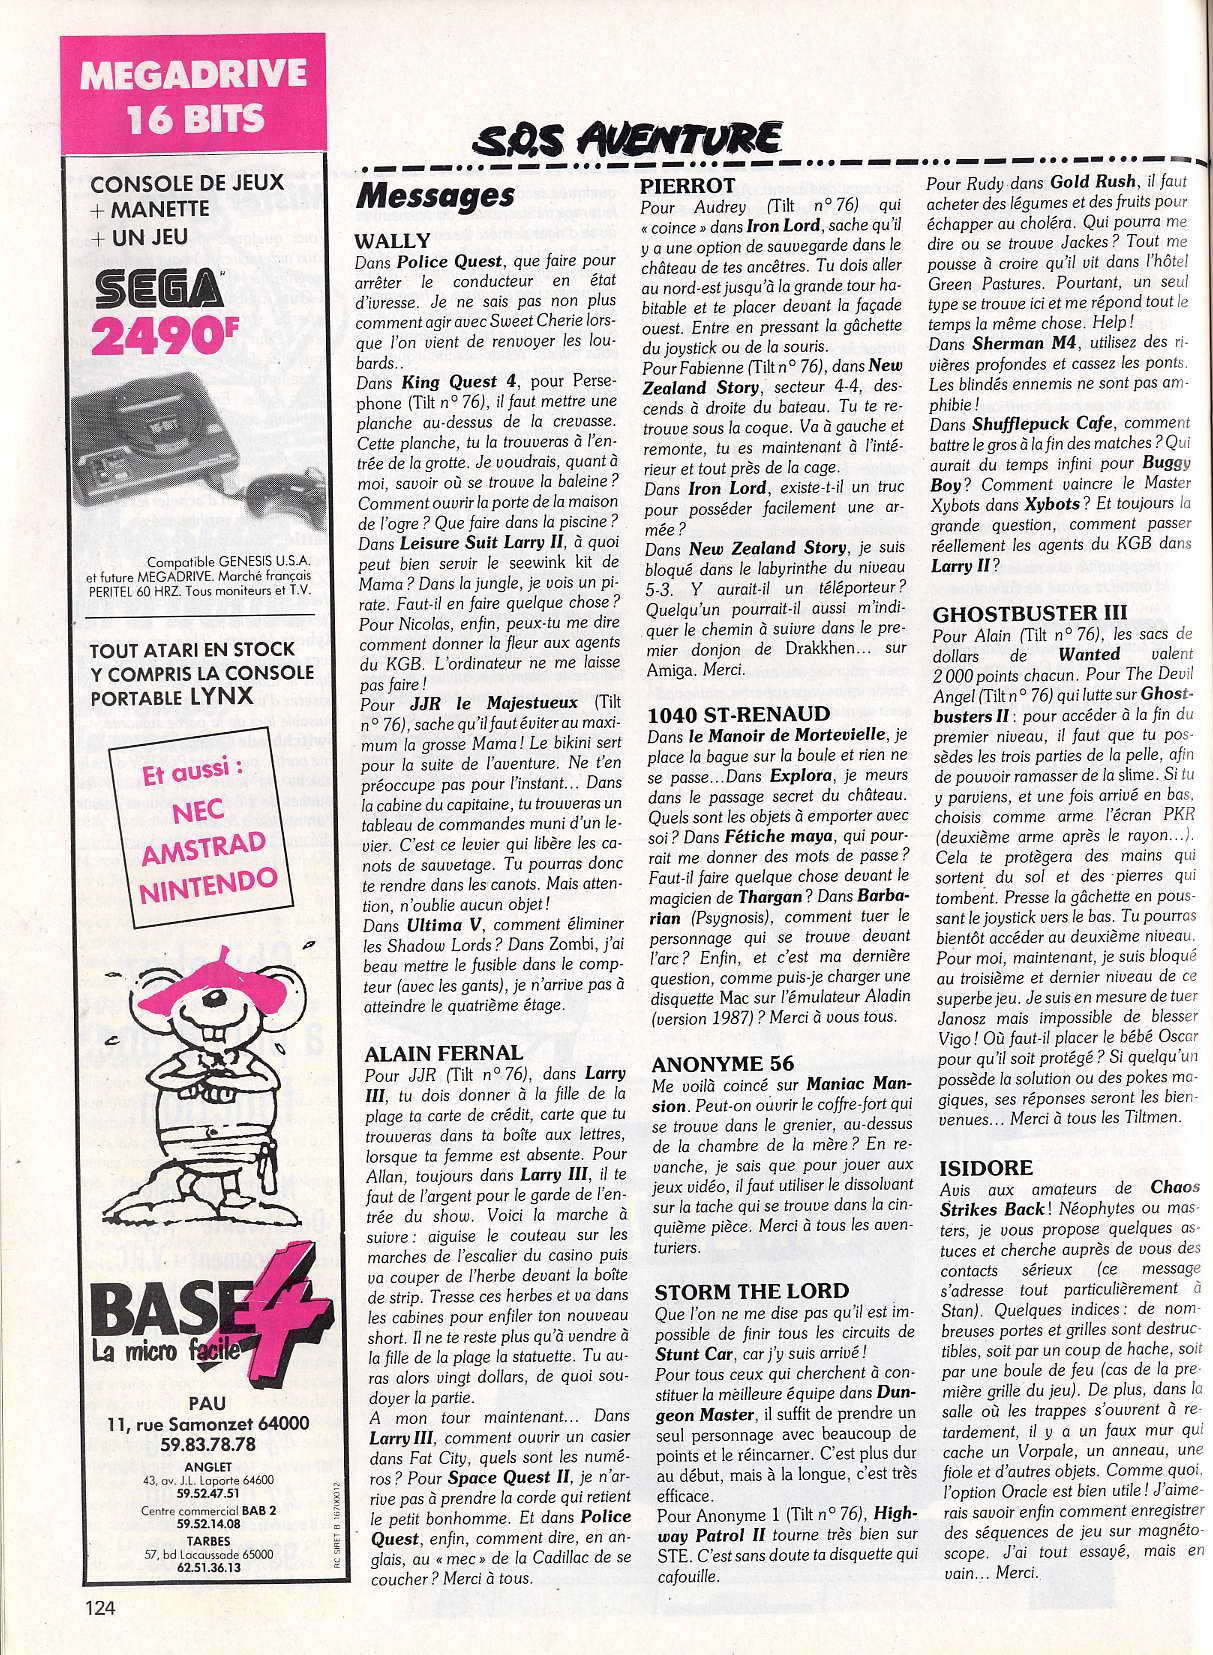 Dungeon Master Hints published in French magazine 'Tilt', Issue #78, May 1990, Page 124